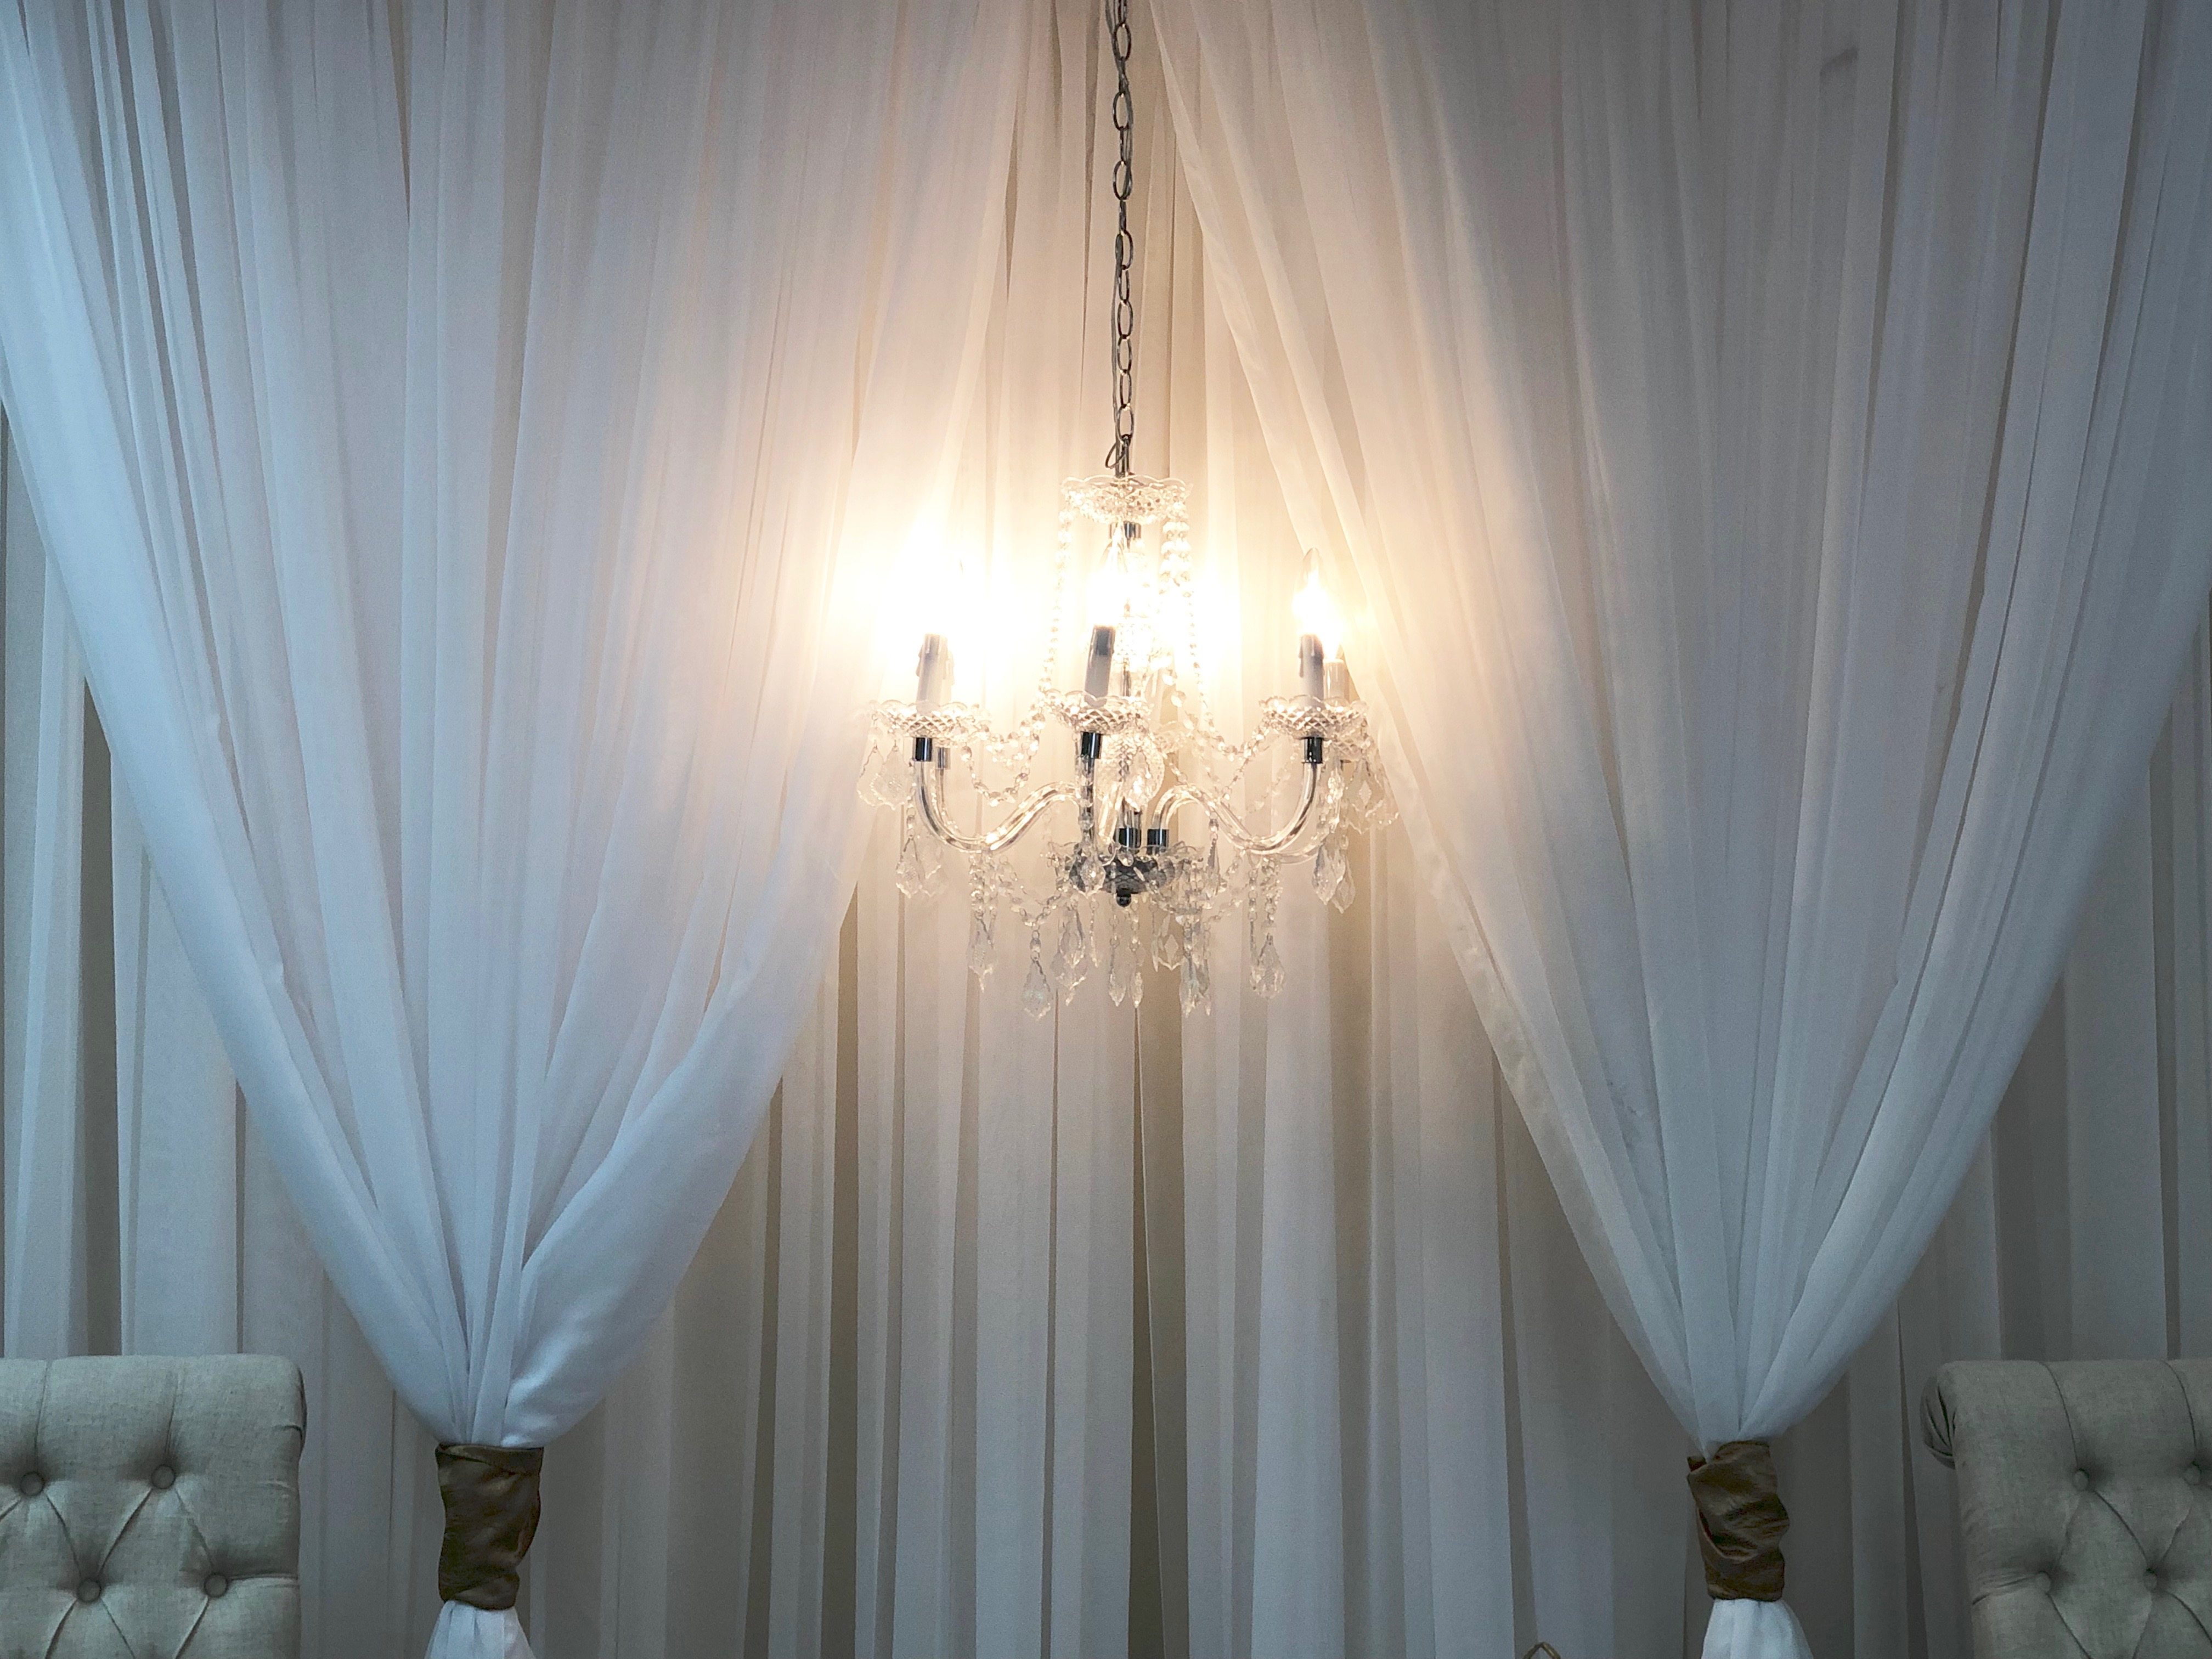 Chiffon With Chandelier Wall 8'x8'